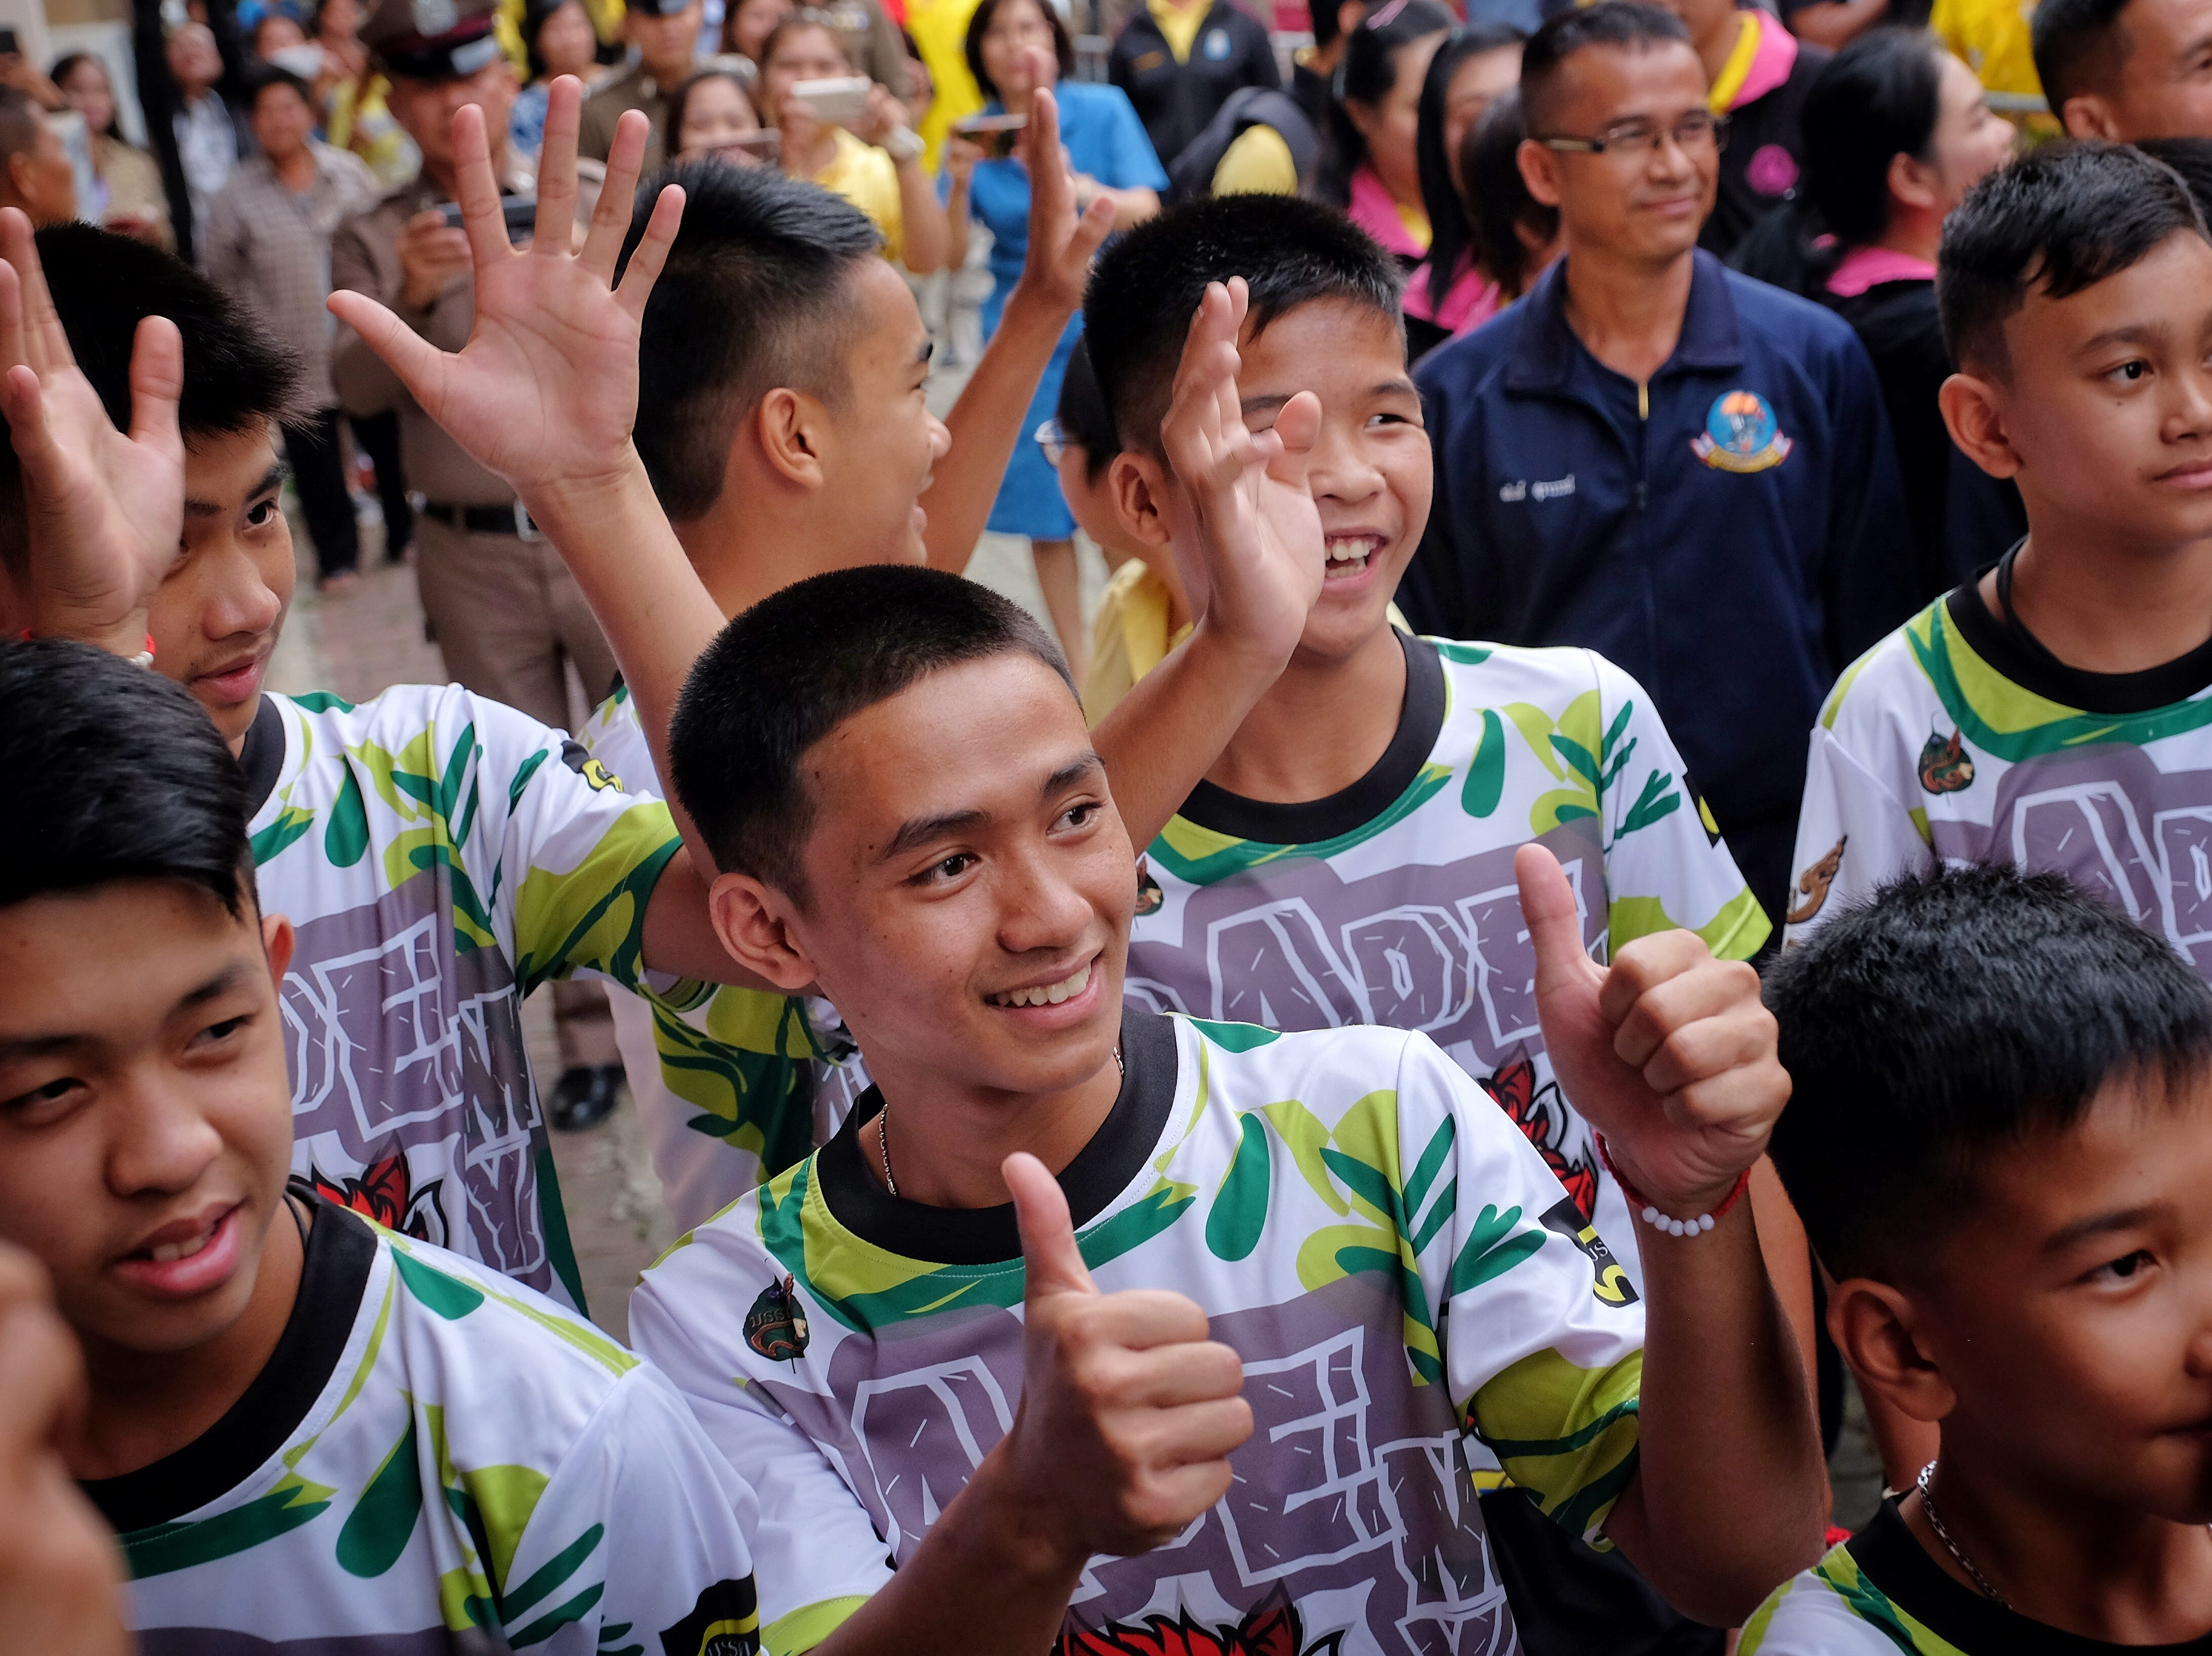 """July 18, 2018: Twelve boys and their coach from the """"Wild Boars"""" soccer team arrive for a press conference in Chiang Rai, Thailand for the first time since they were rescued from a cave in northern Thailand. The 12 boys, aged 11 to 16, and their 25-year-old coach were discharged early from Chiang Rai Prachanukroh hospital after a speedy recovery and thanked those involved in their rescue."""